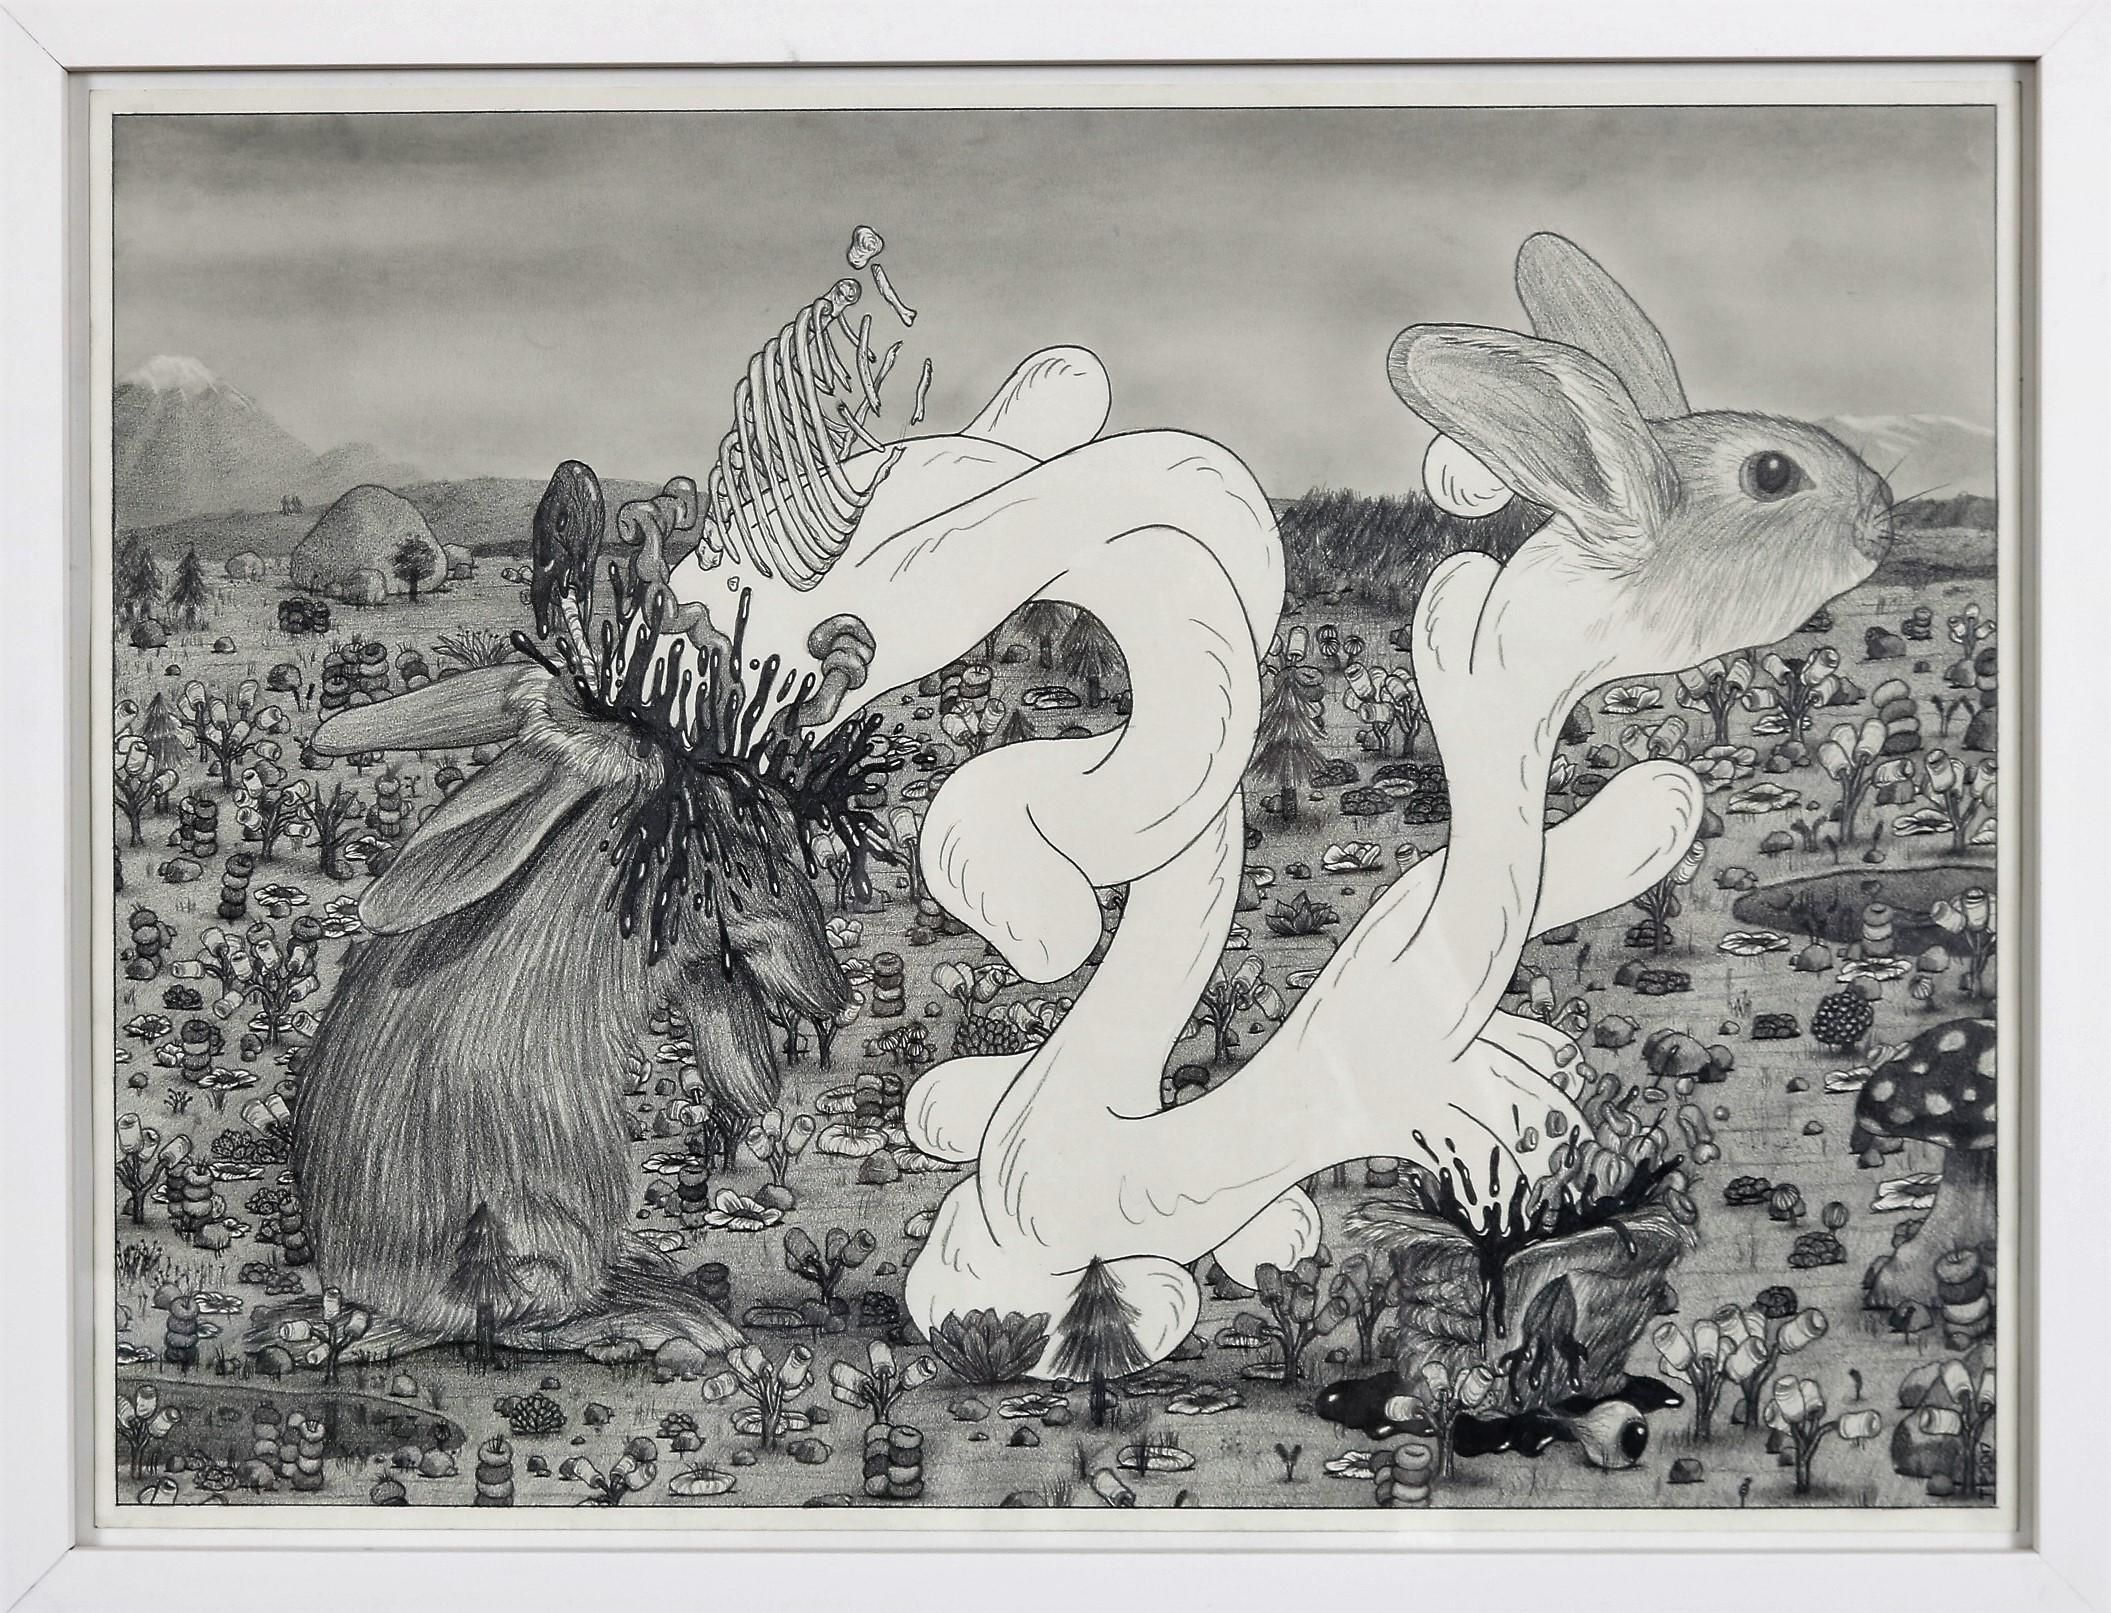 Sperrmüll Teltow bunny parasite 18 x 24 pencil on paper 2017